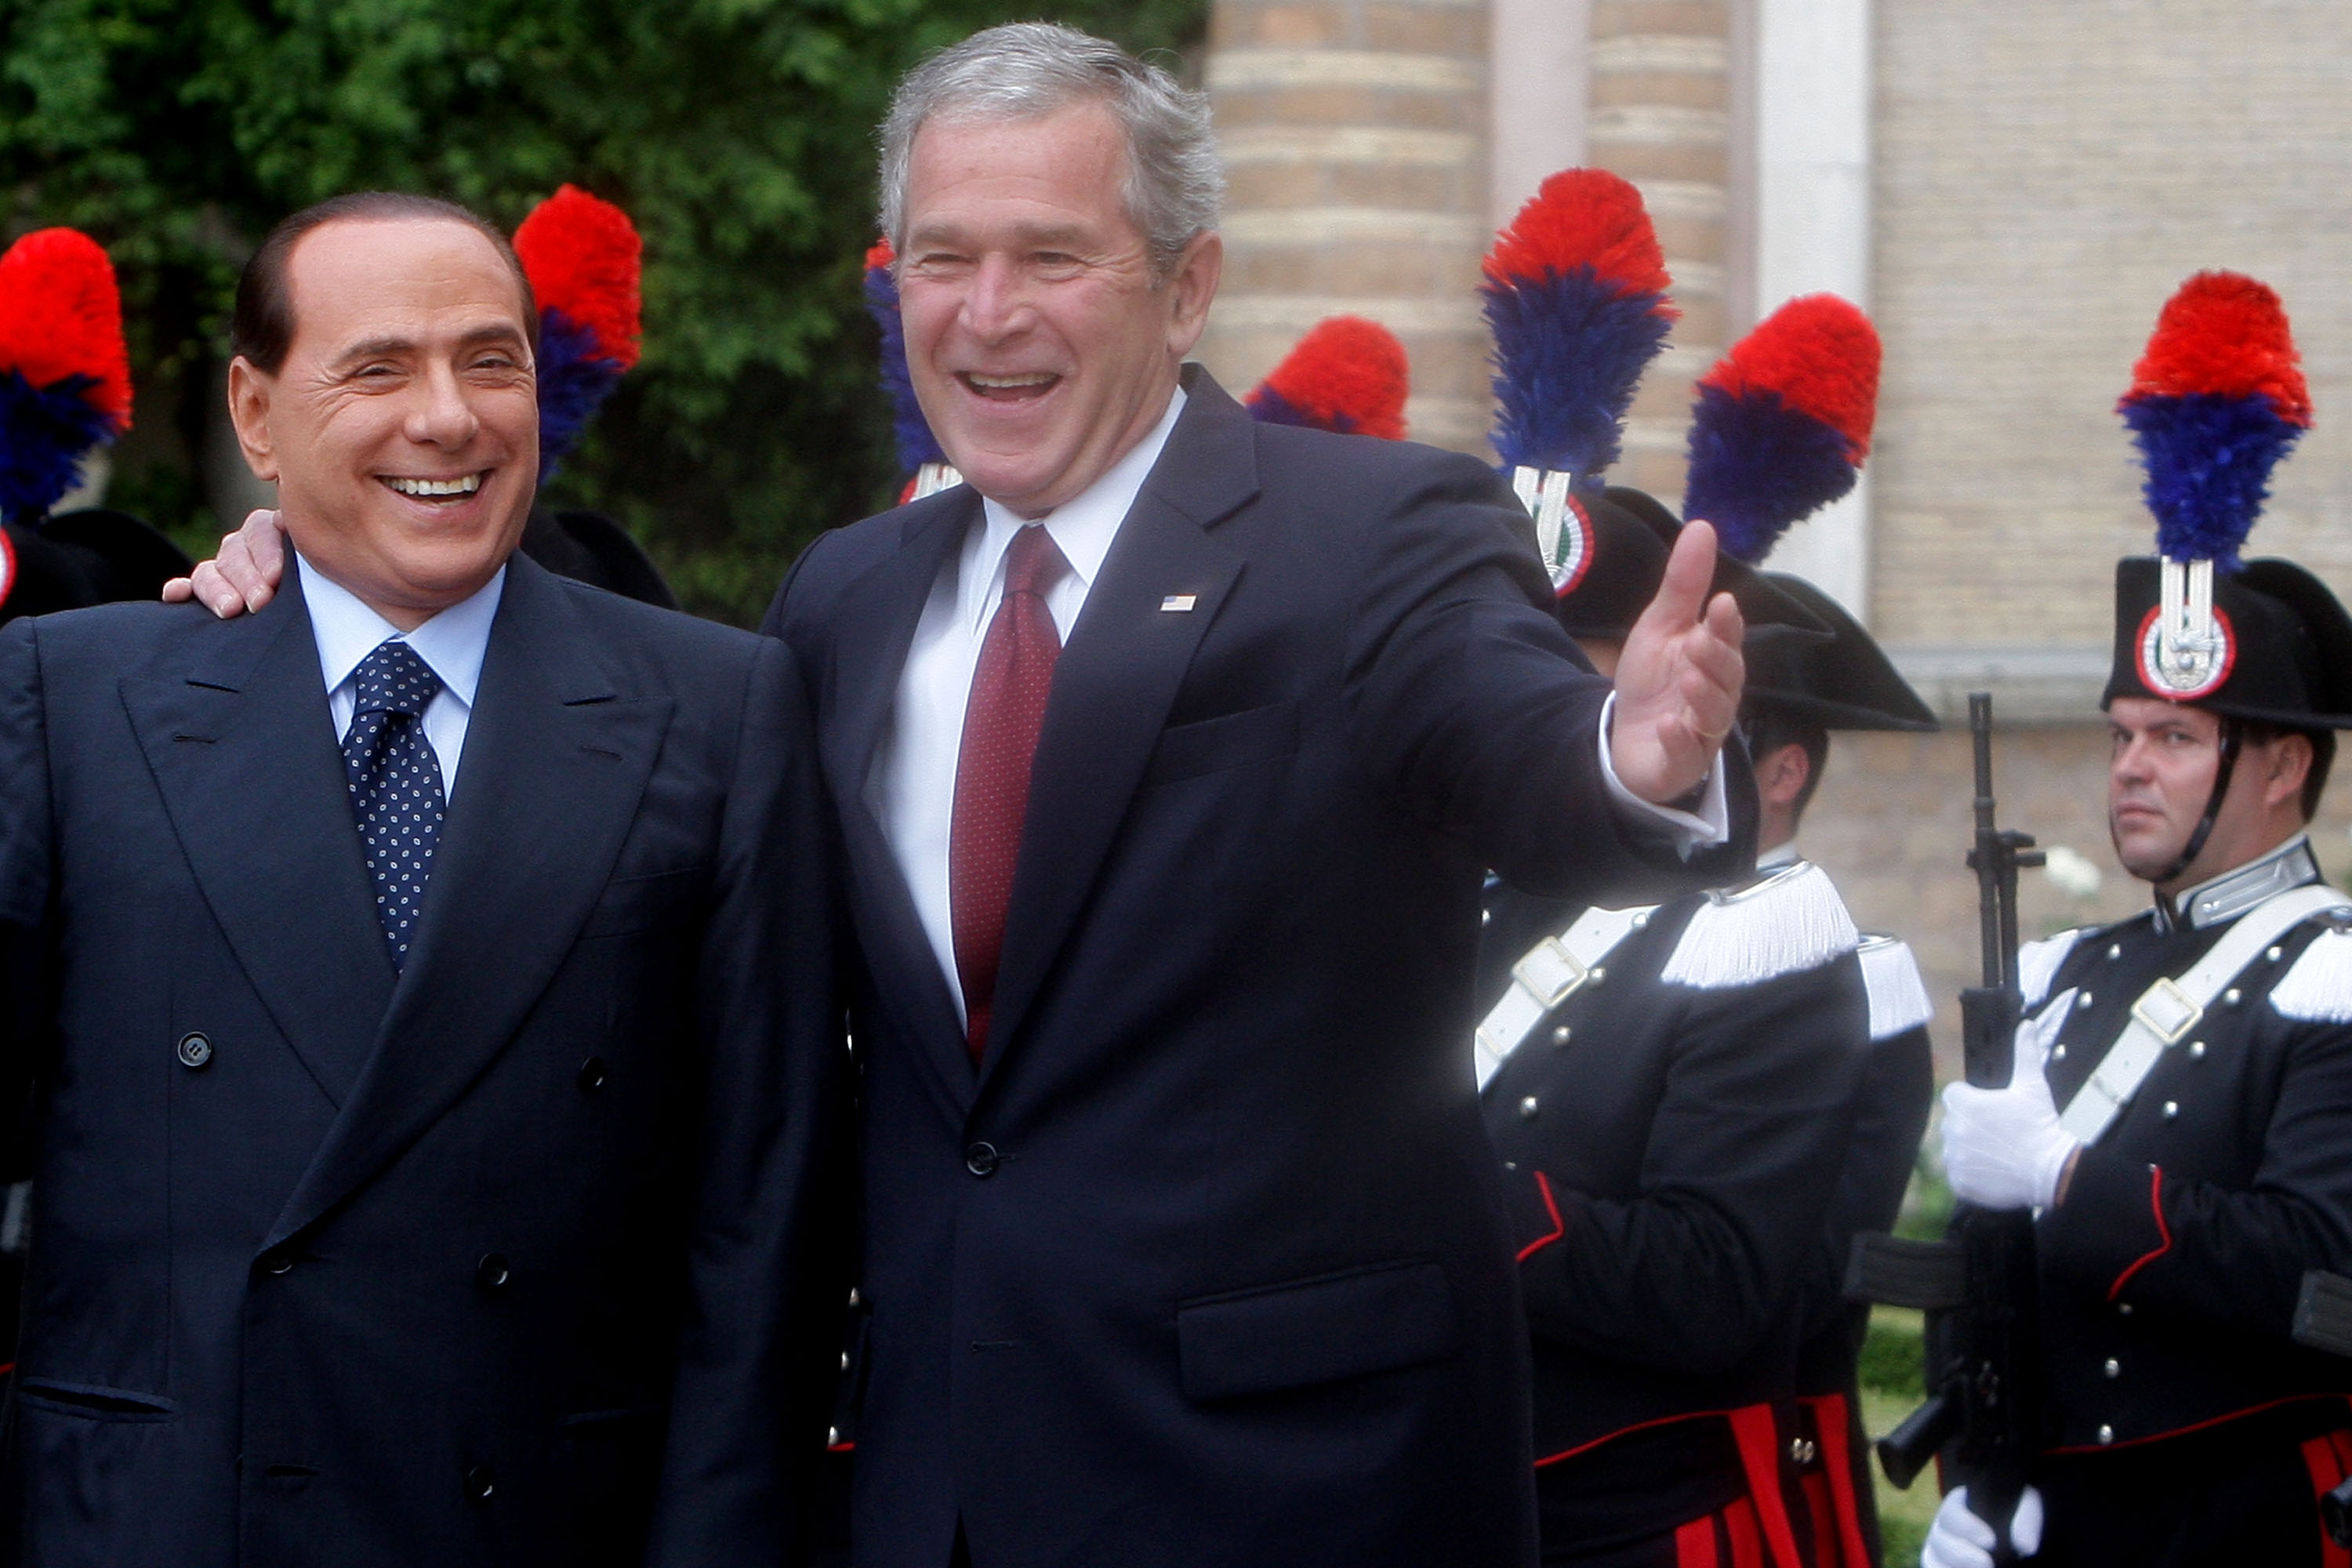 Italian Prime Minister Silvio Berlusconi stands with Bush as he arrives at Villa Madama, June 12, 2008.